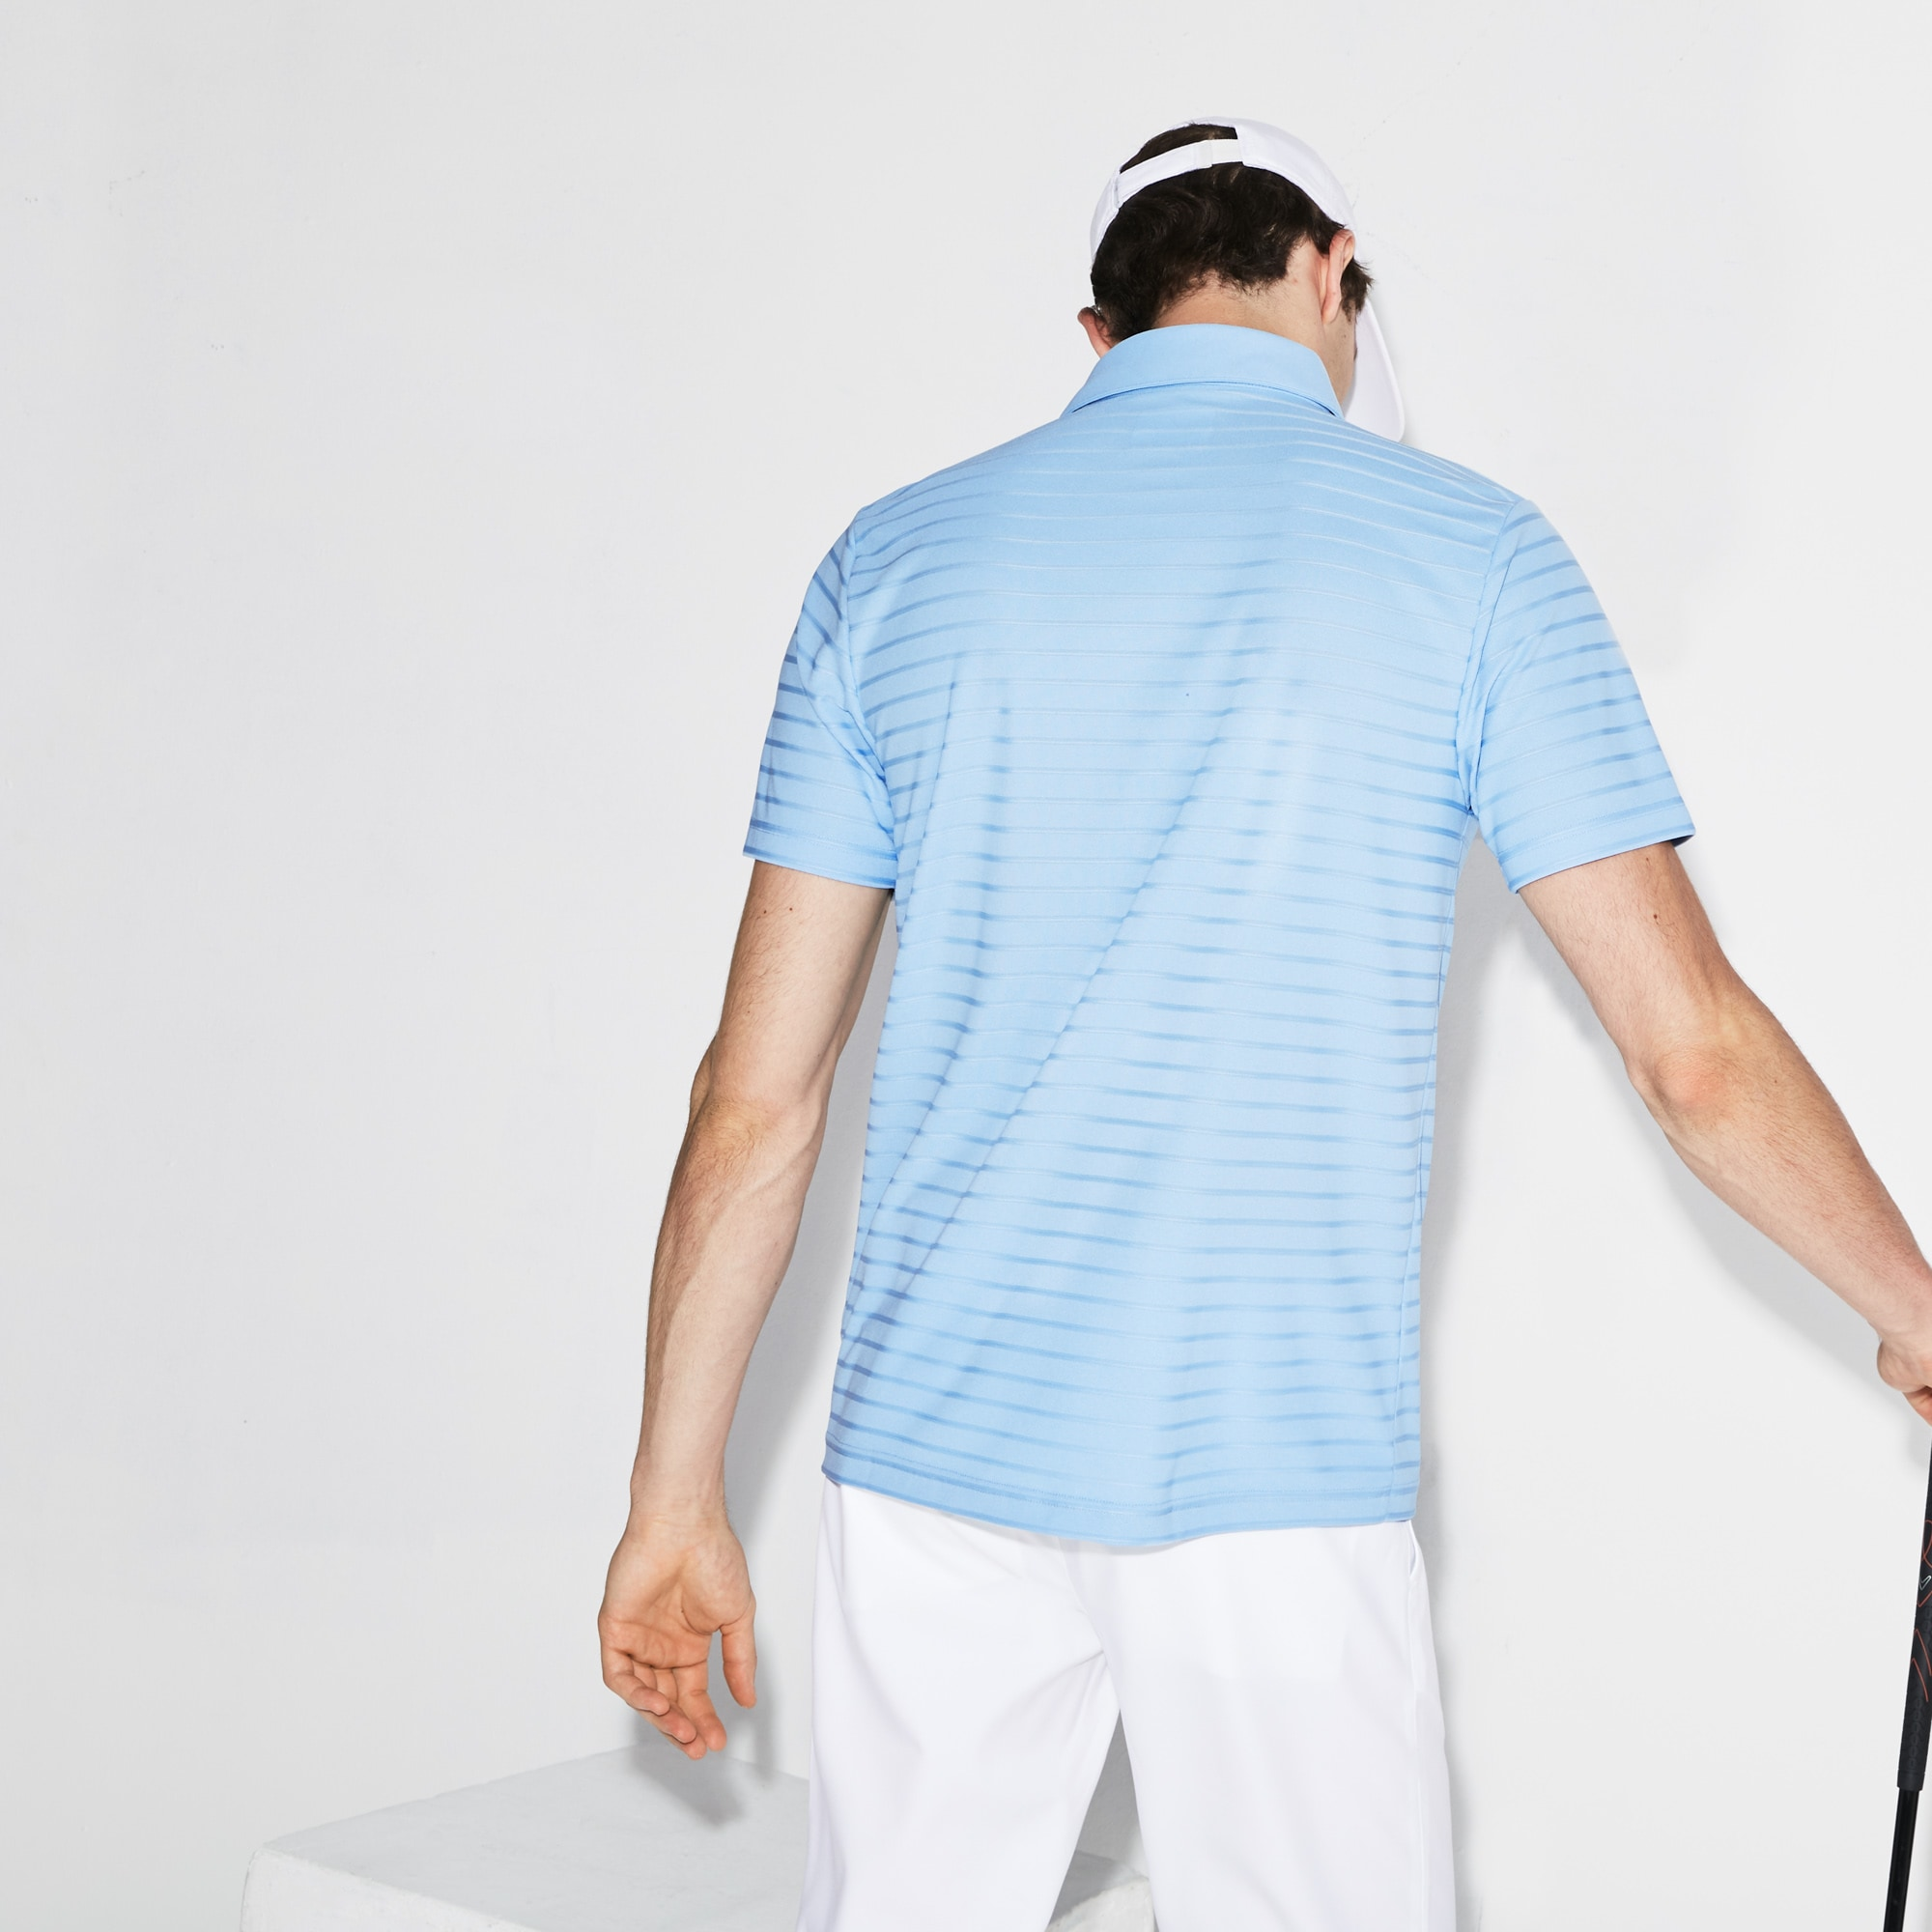 Lacoste - Herren-Funktions-Polo aus Jacquard-Jersey LACOSTE SPORT GOLF - 2